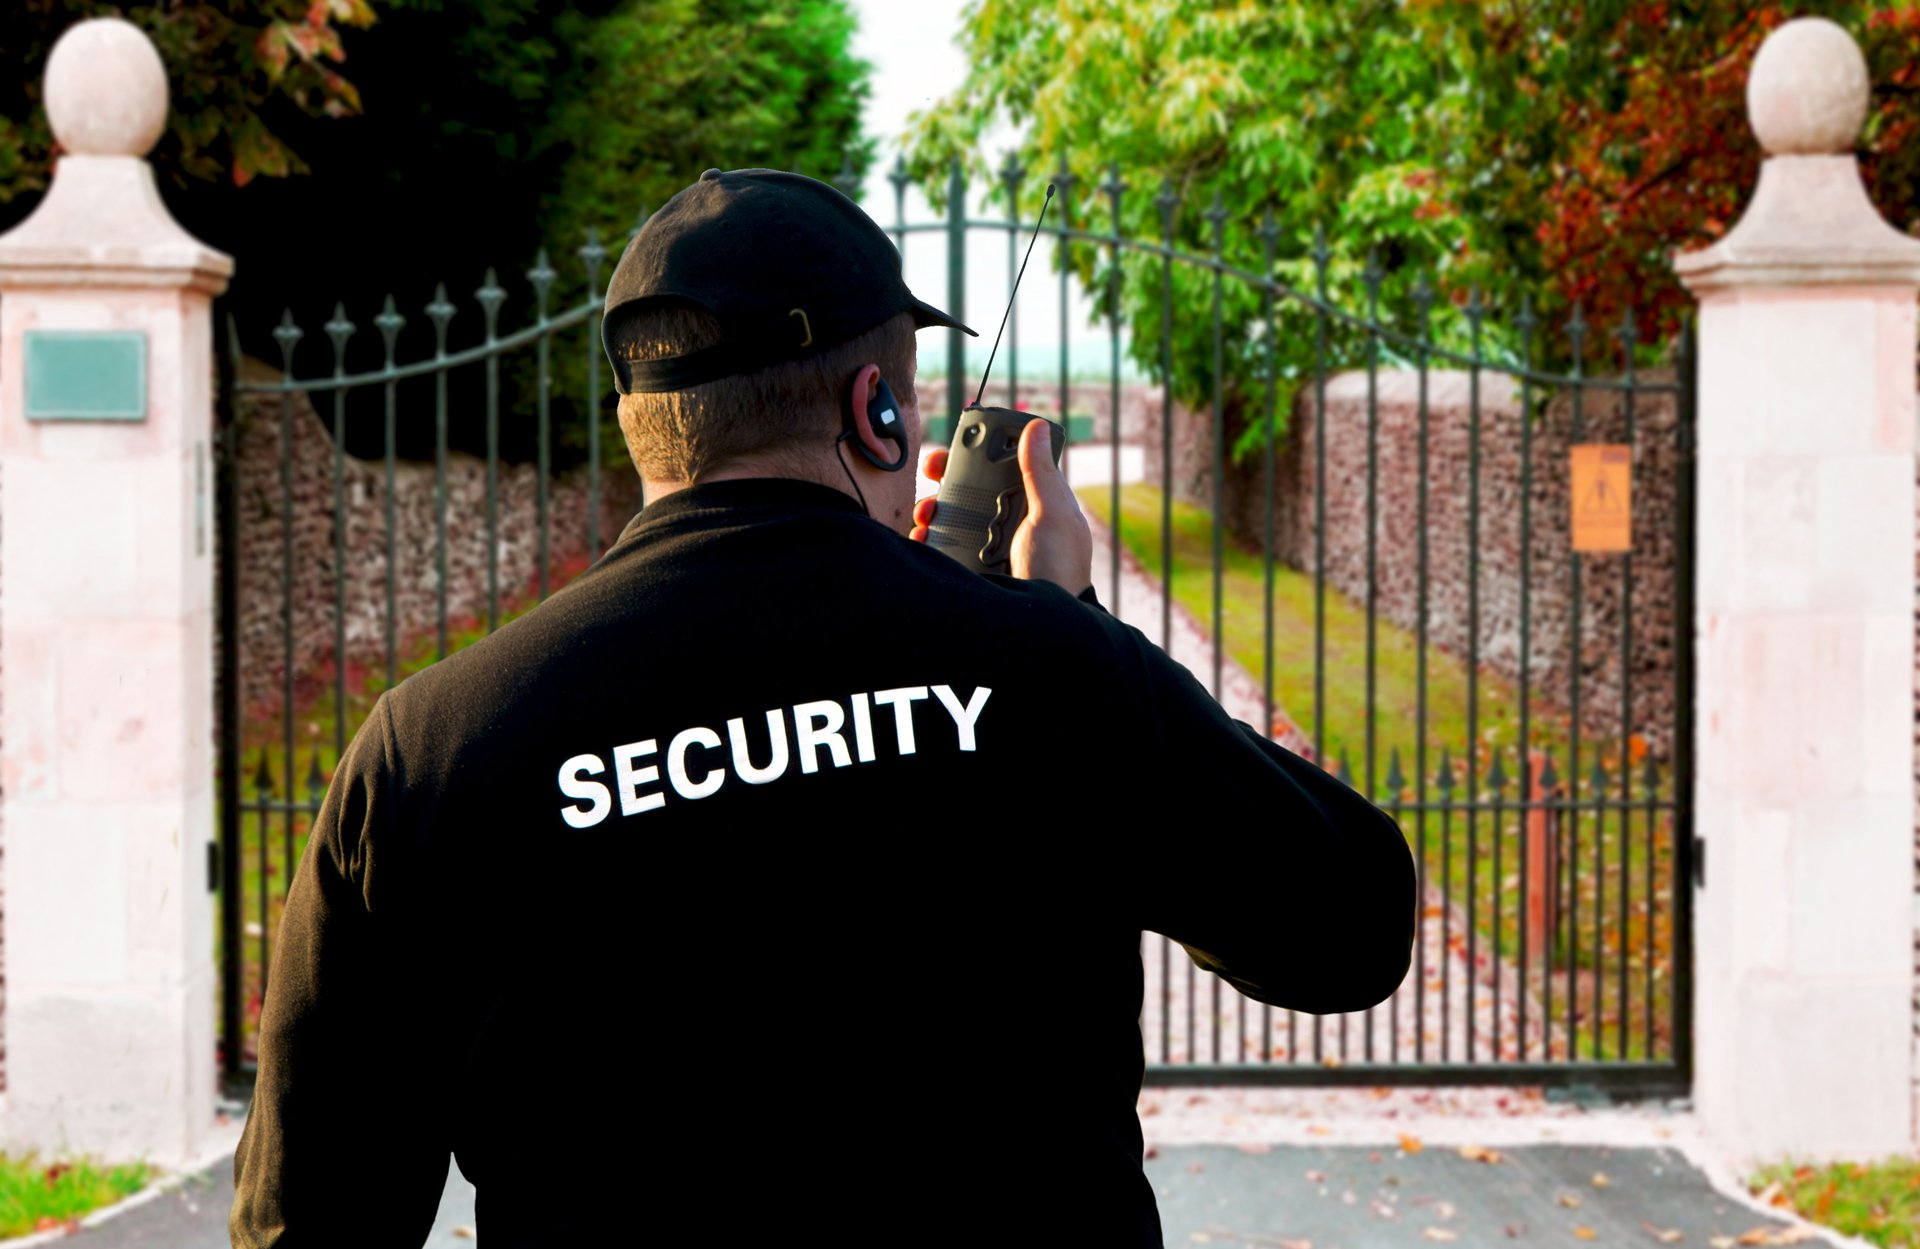 Security guard in front of house iron gate